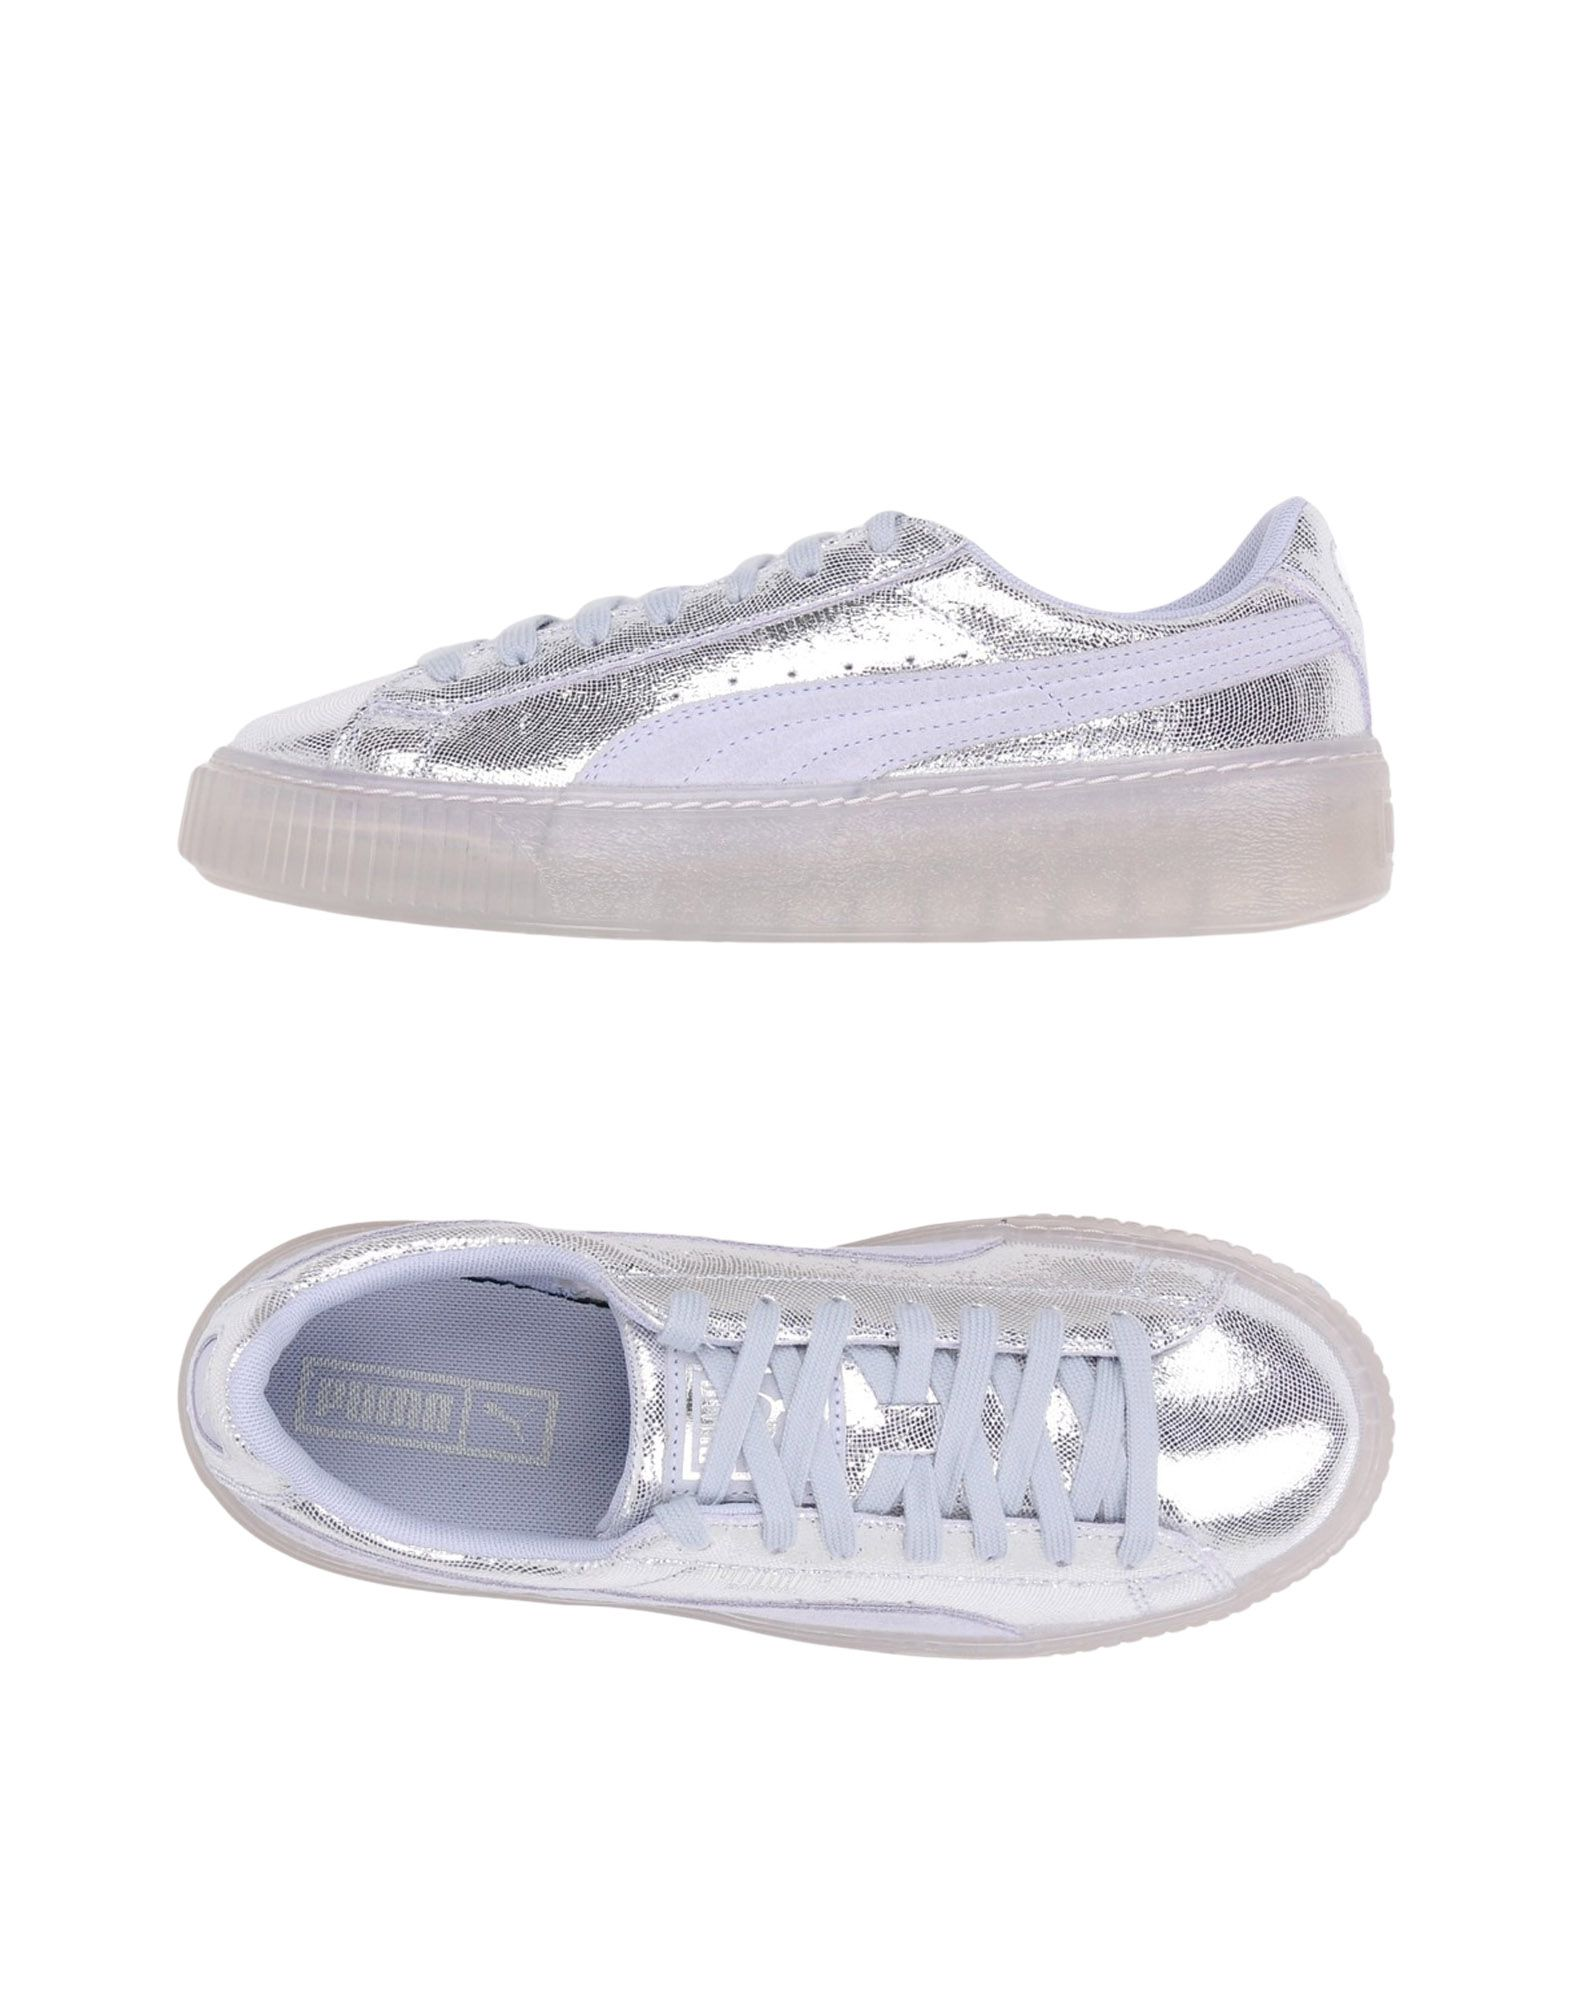 Baskets Puma Basket Platform Ns Wn's - Femme - Baskets Puma Argent Confortable et belle